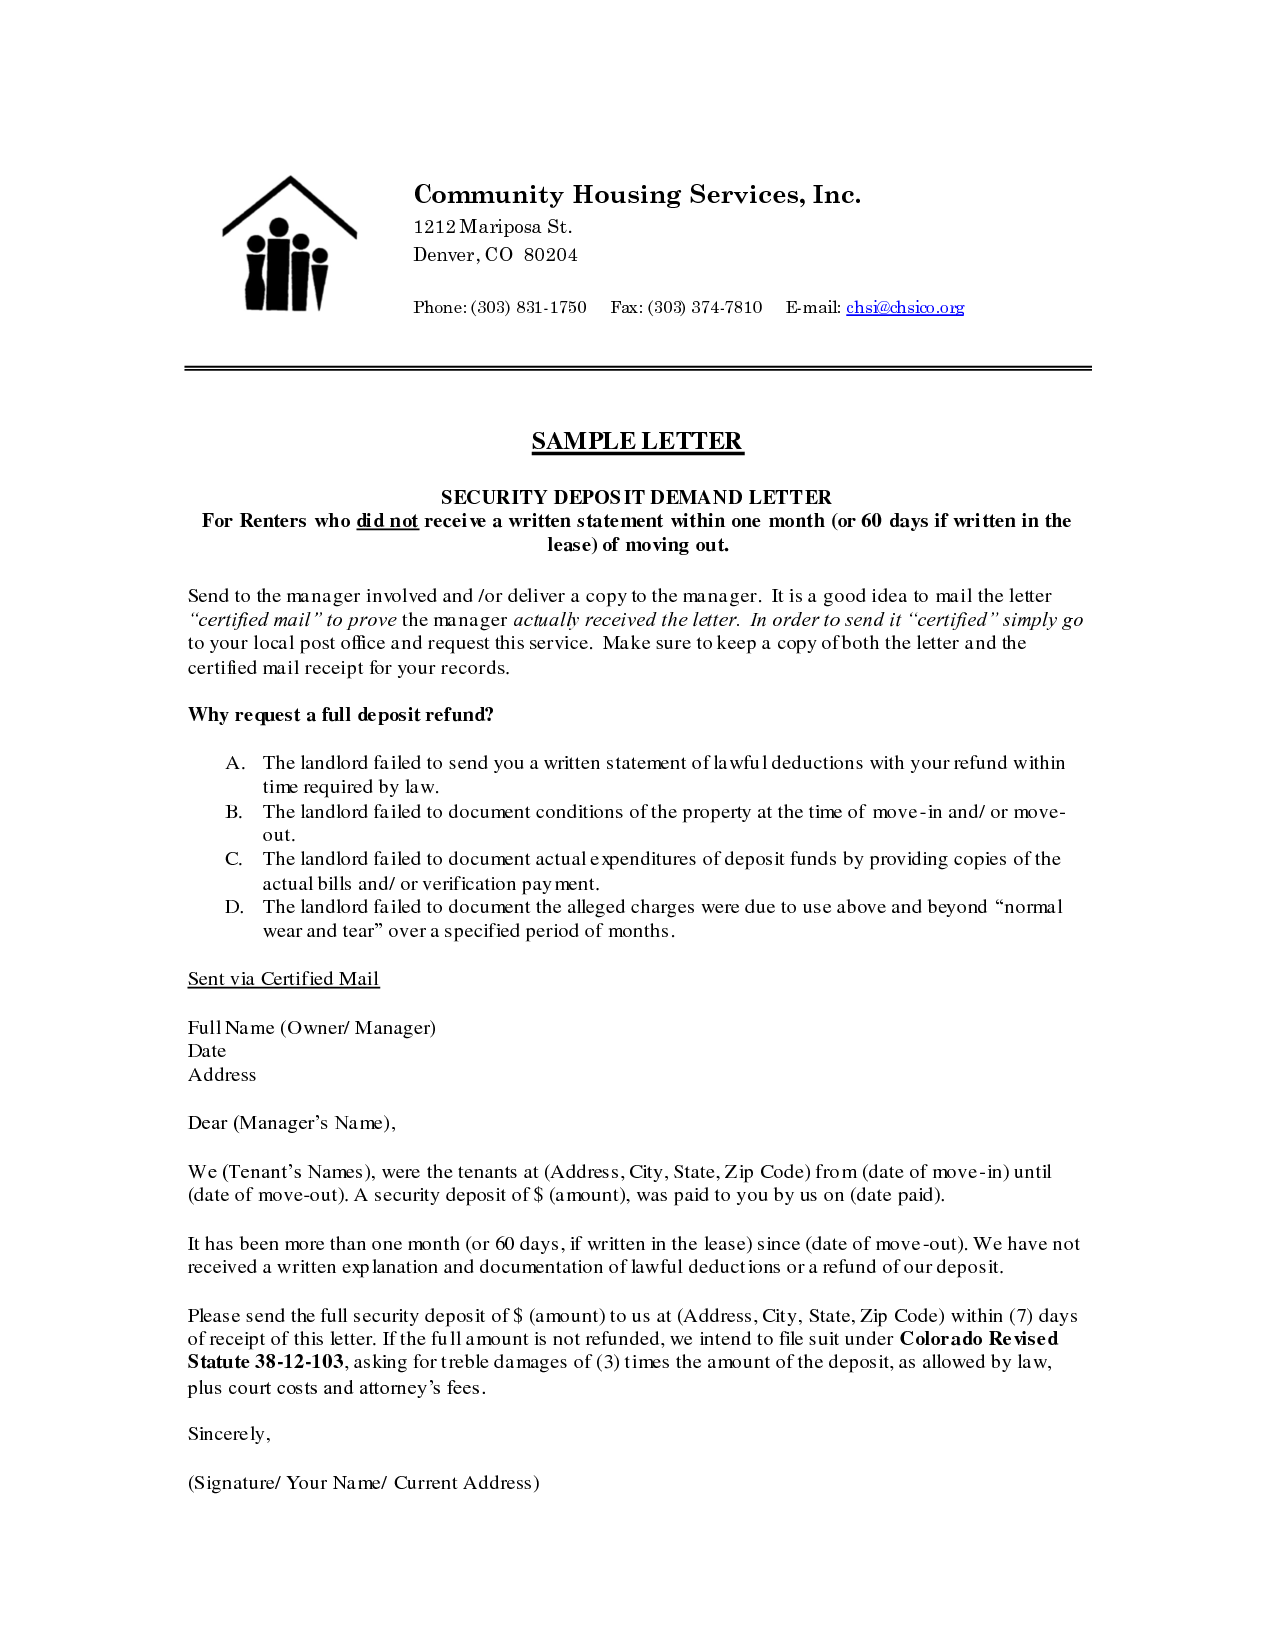 Sample Letter From Landlord To Tenant Regarding Security Deposit from publisher99.files.wordpress.com